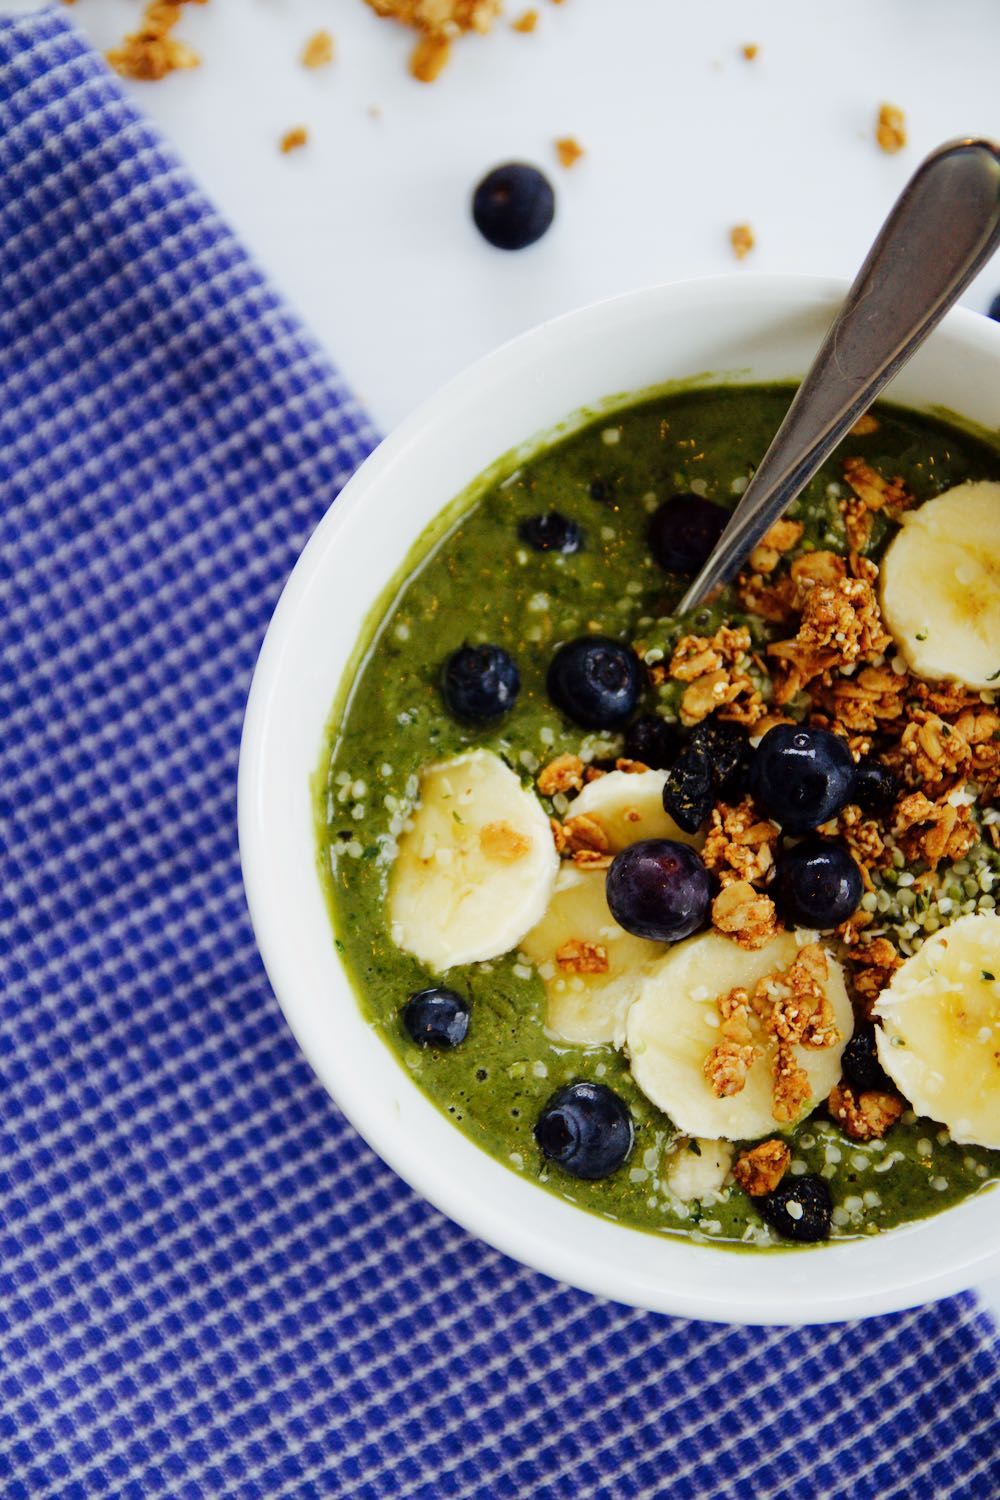 Recipe for an acai bowl with spinach, avocado, hemp and kale